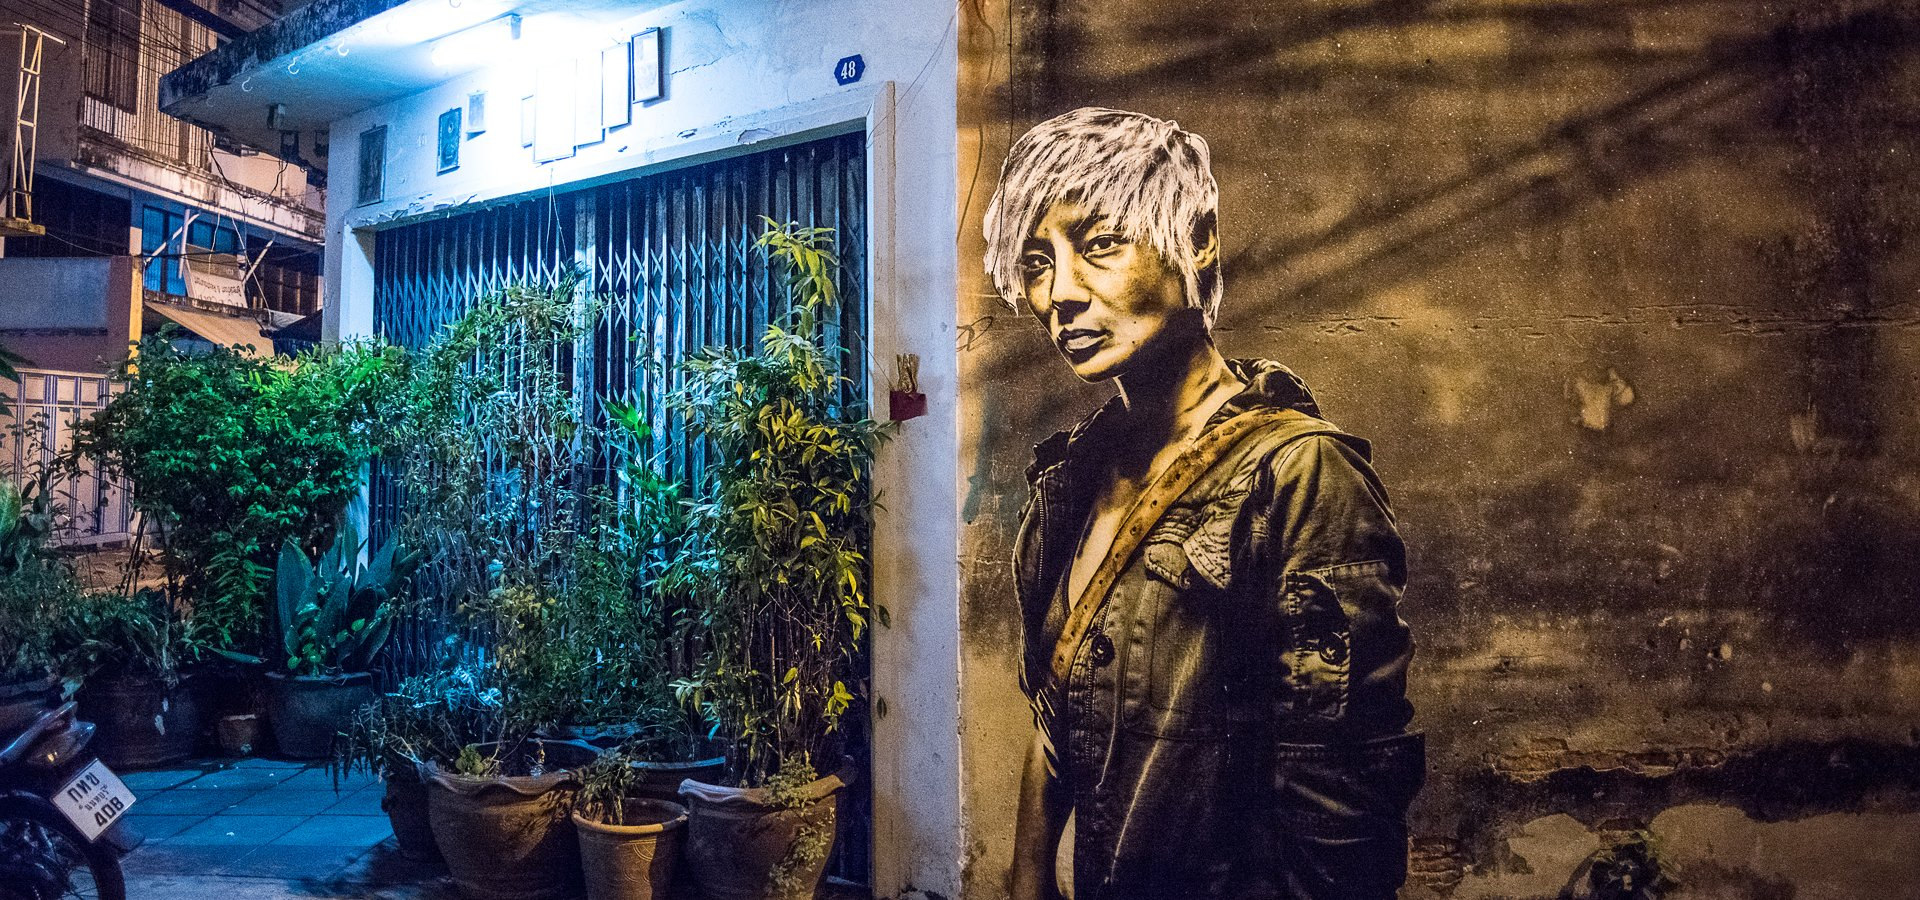 Eddie Colla Gold Fish Lady in Rue vieille du temple